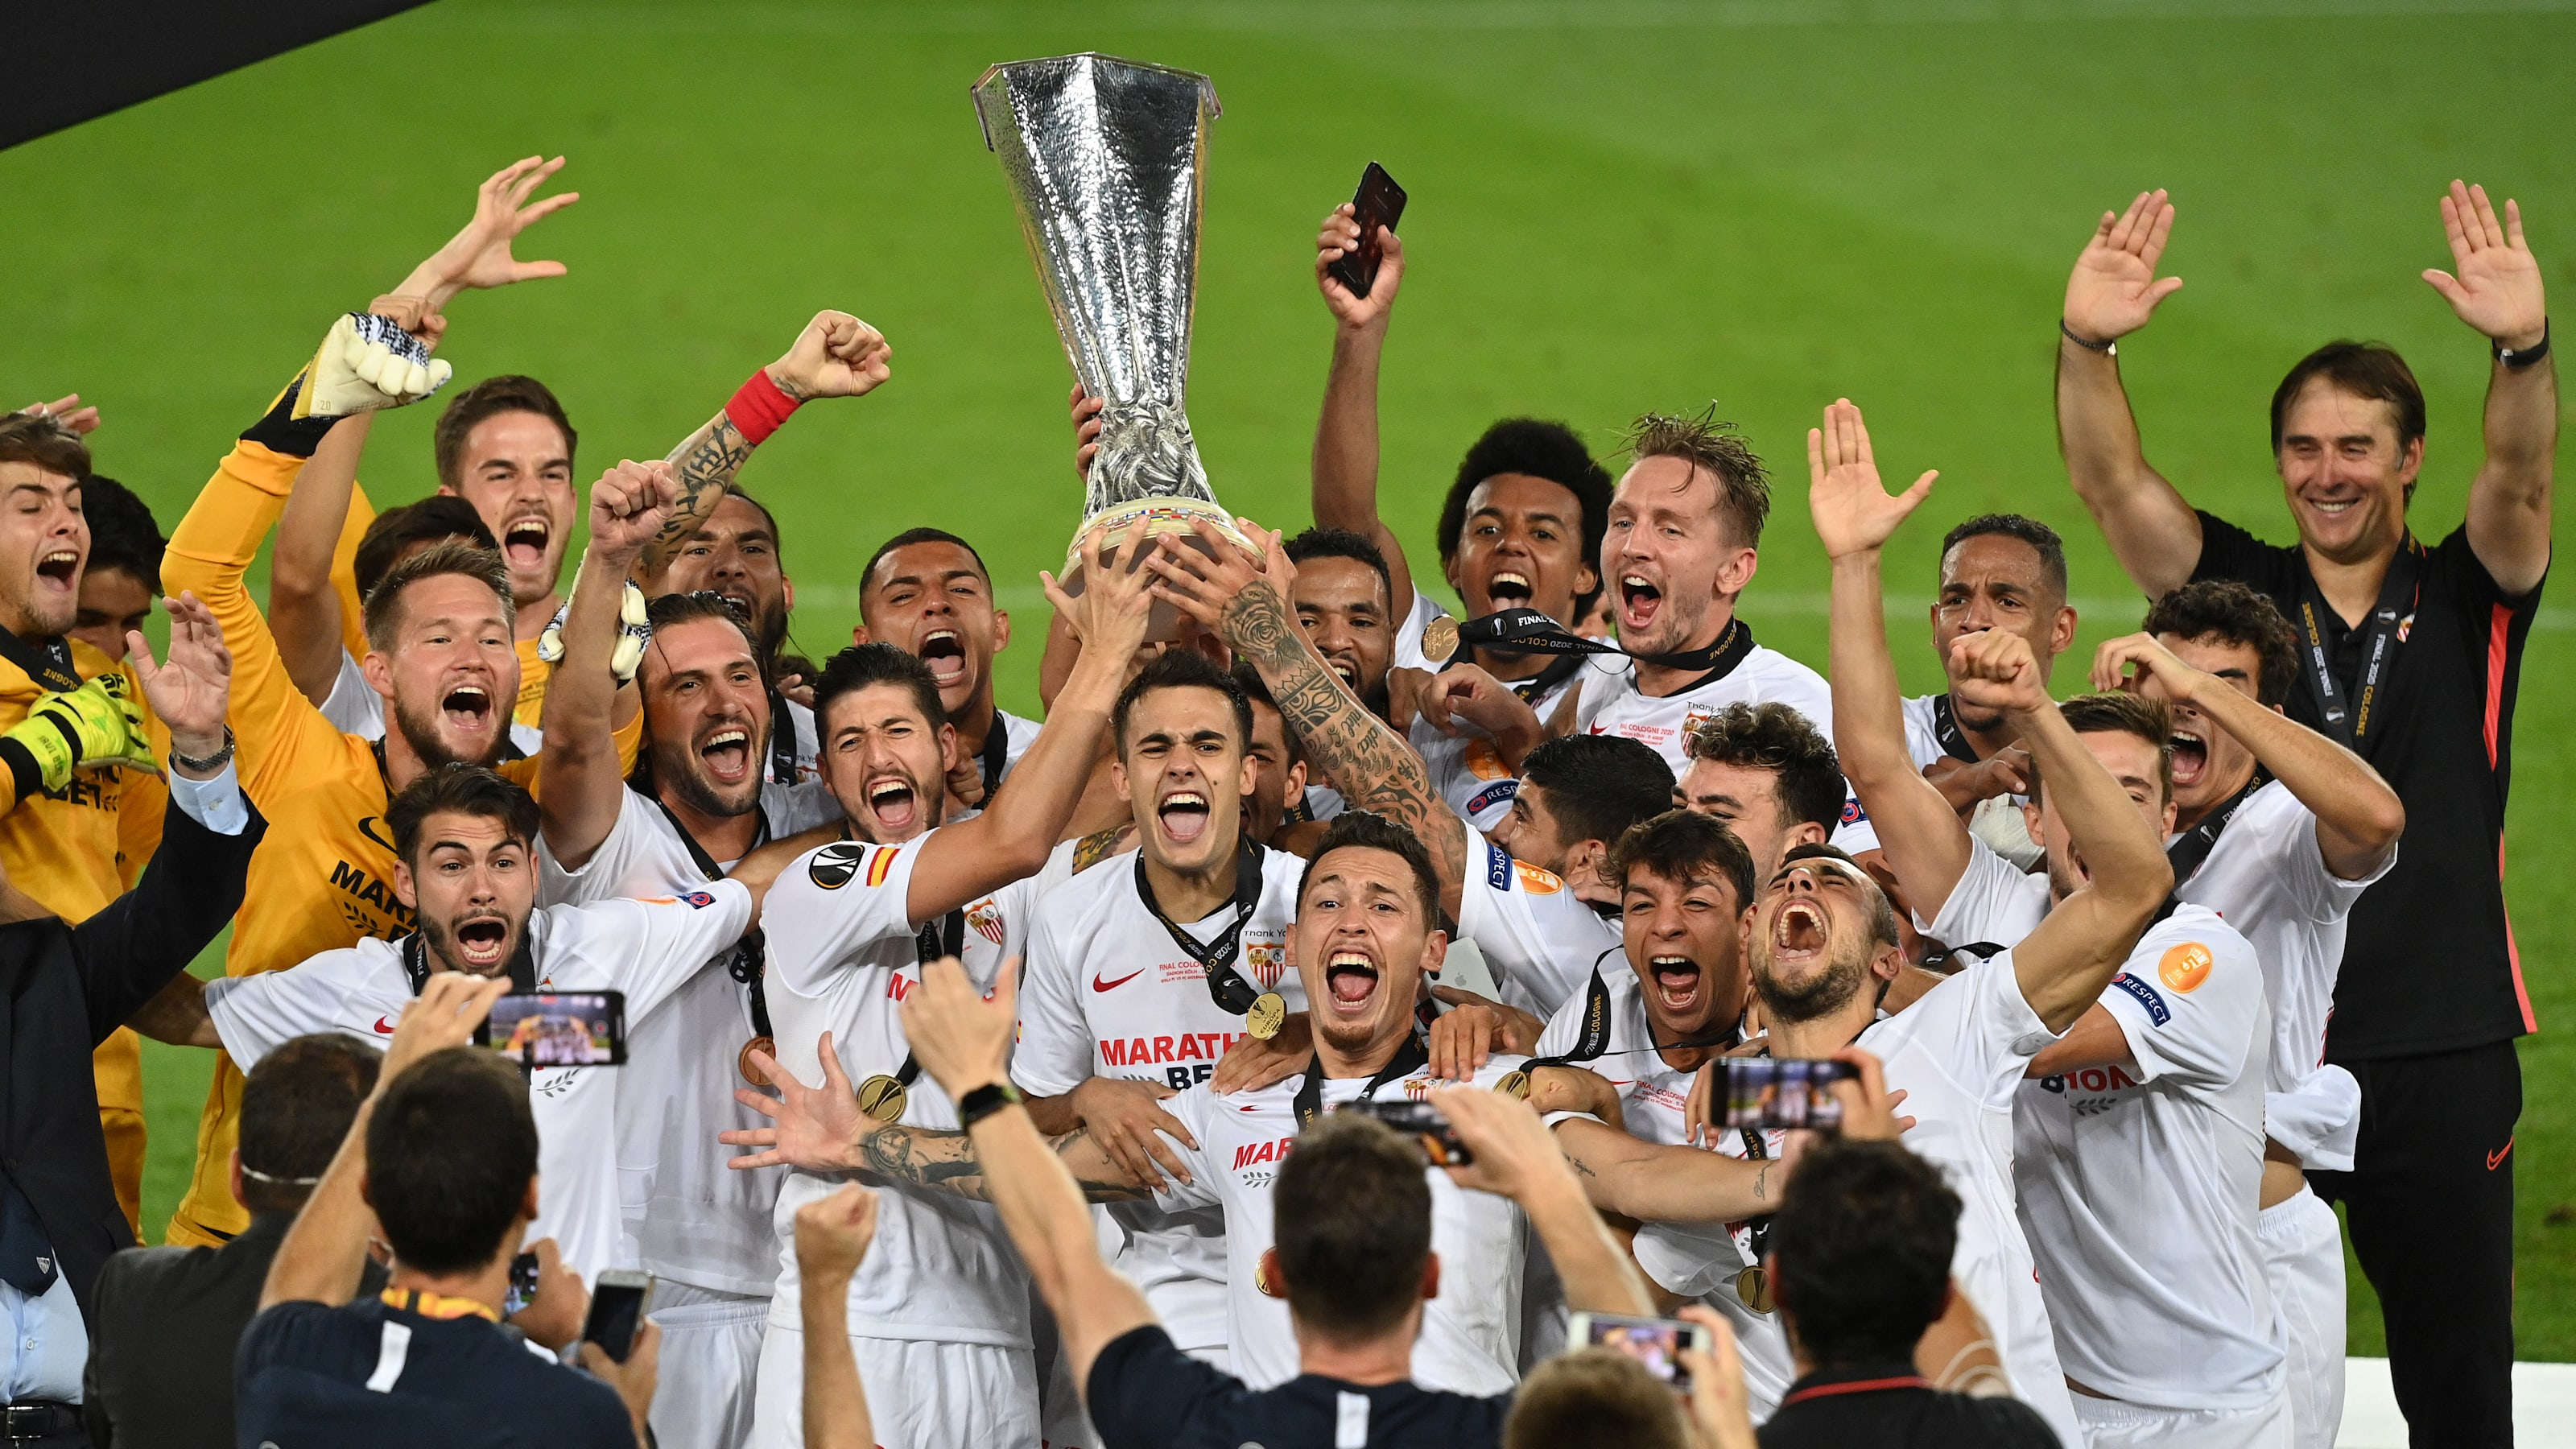 uefa europa league draw start time and where to watch on live streaming in india uefa europa league draw start time and